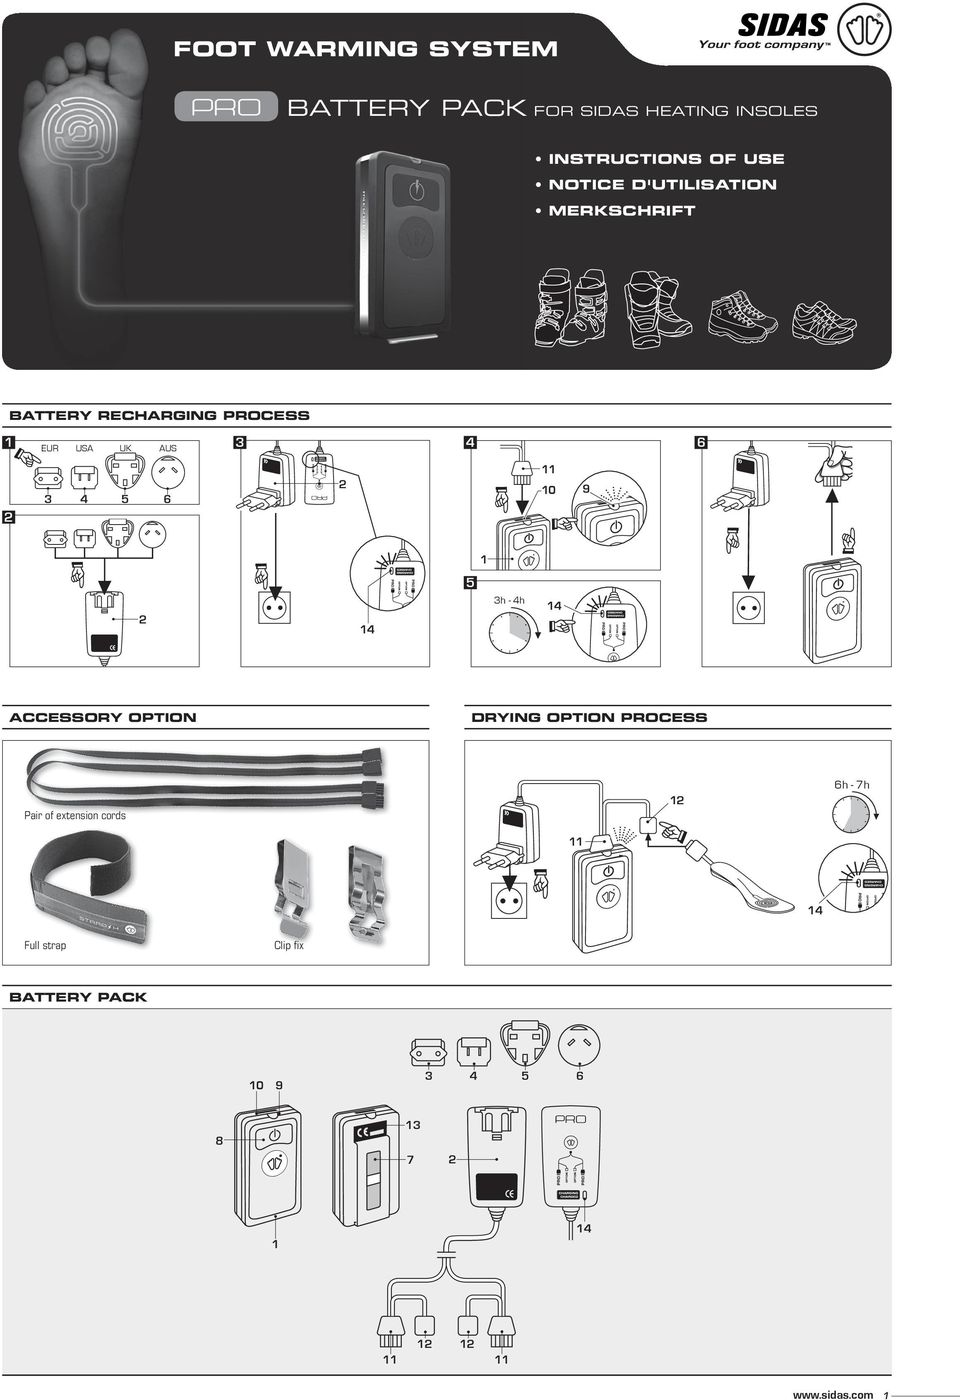 AUS 3 4 6 3 4 6 0 9 3h - 4h accessory option drying option Process Pair of